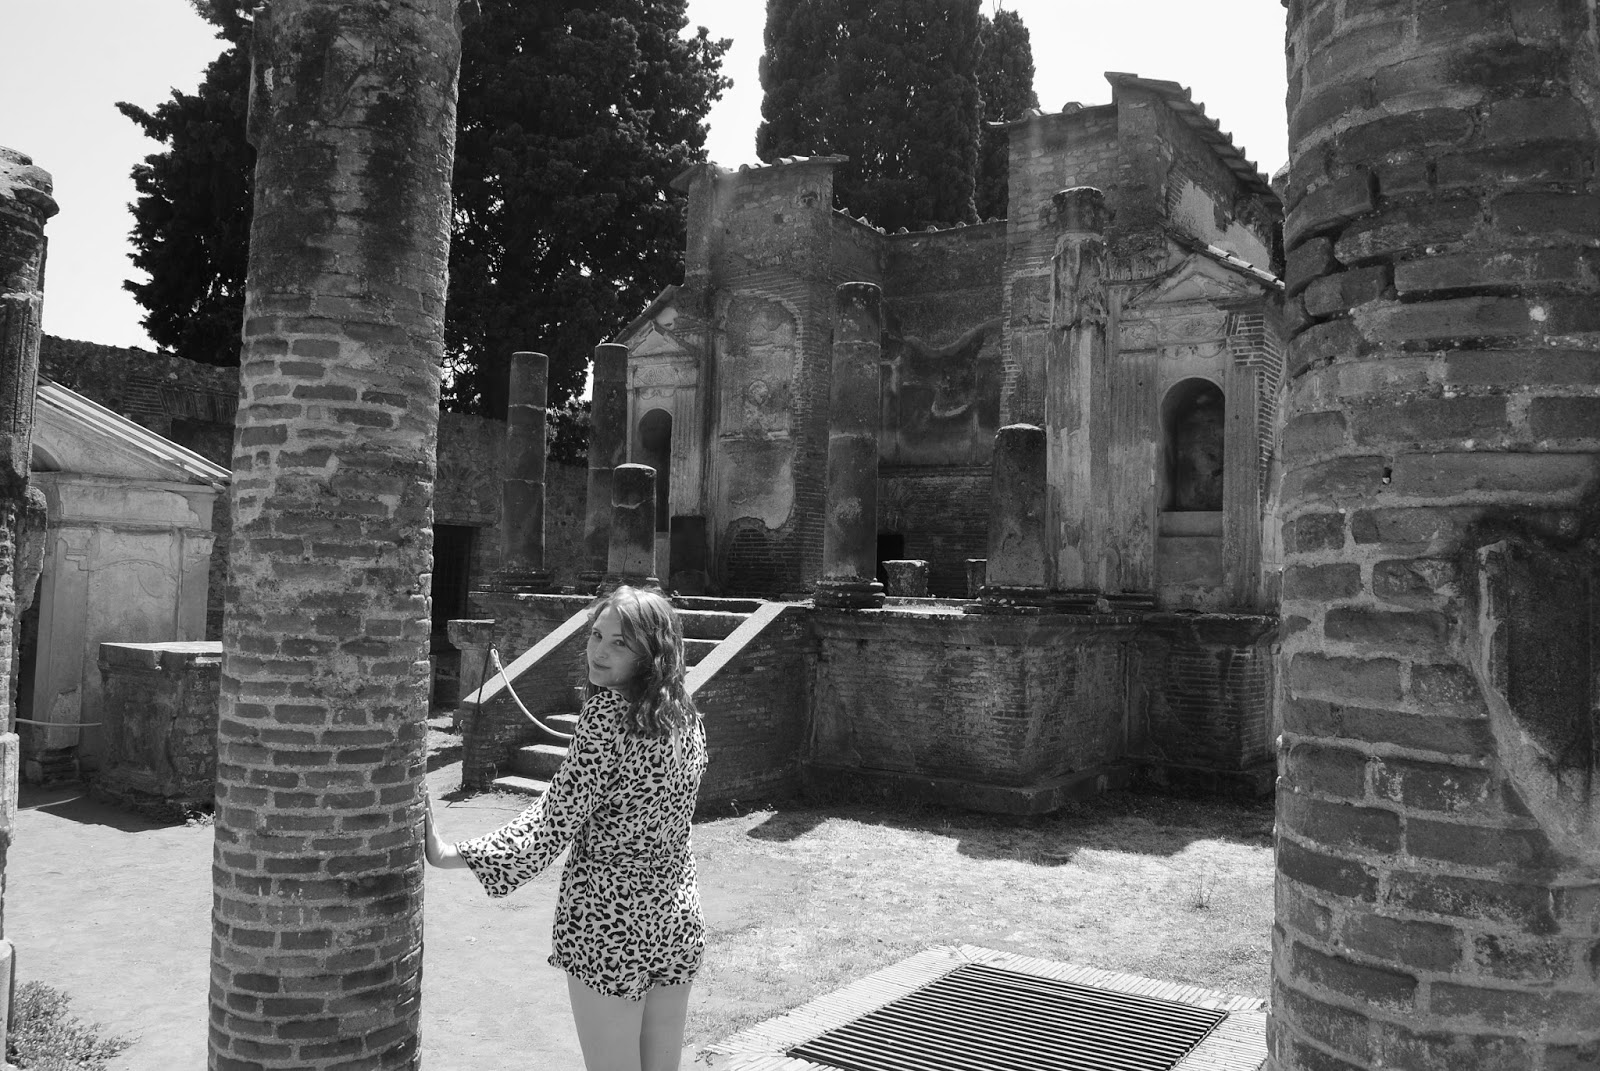 Temple of Isis in Pompeii Italy wearing Auguste playsuit